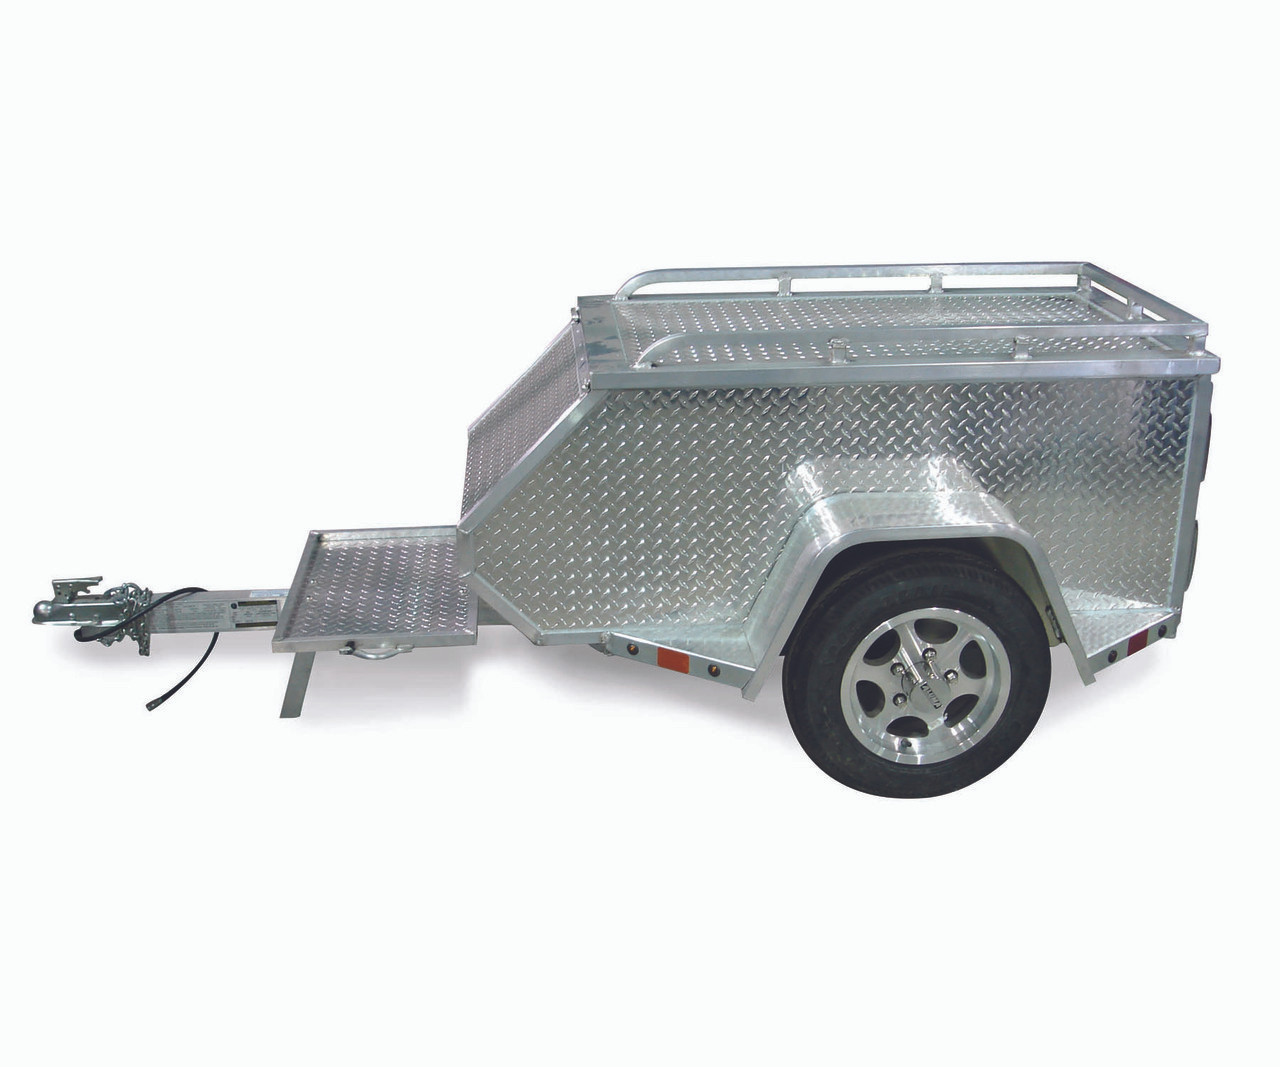 """ALMCTXL --- 57"""" x 27"""" Aluminum Trailer to Pull Behind Motorcycle"""